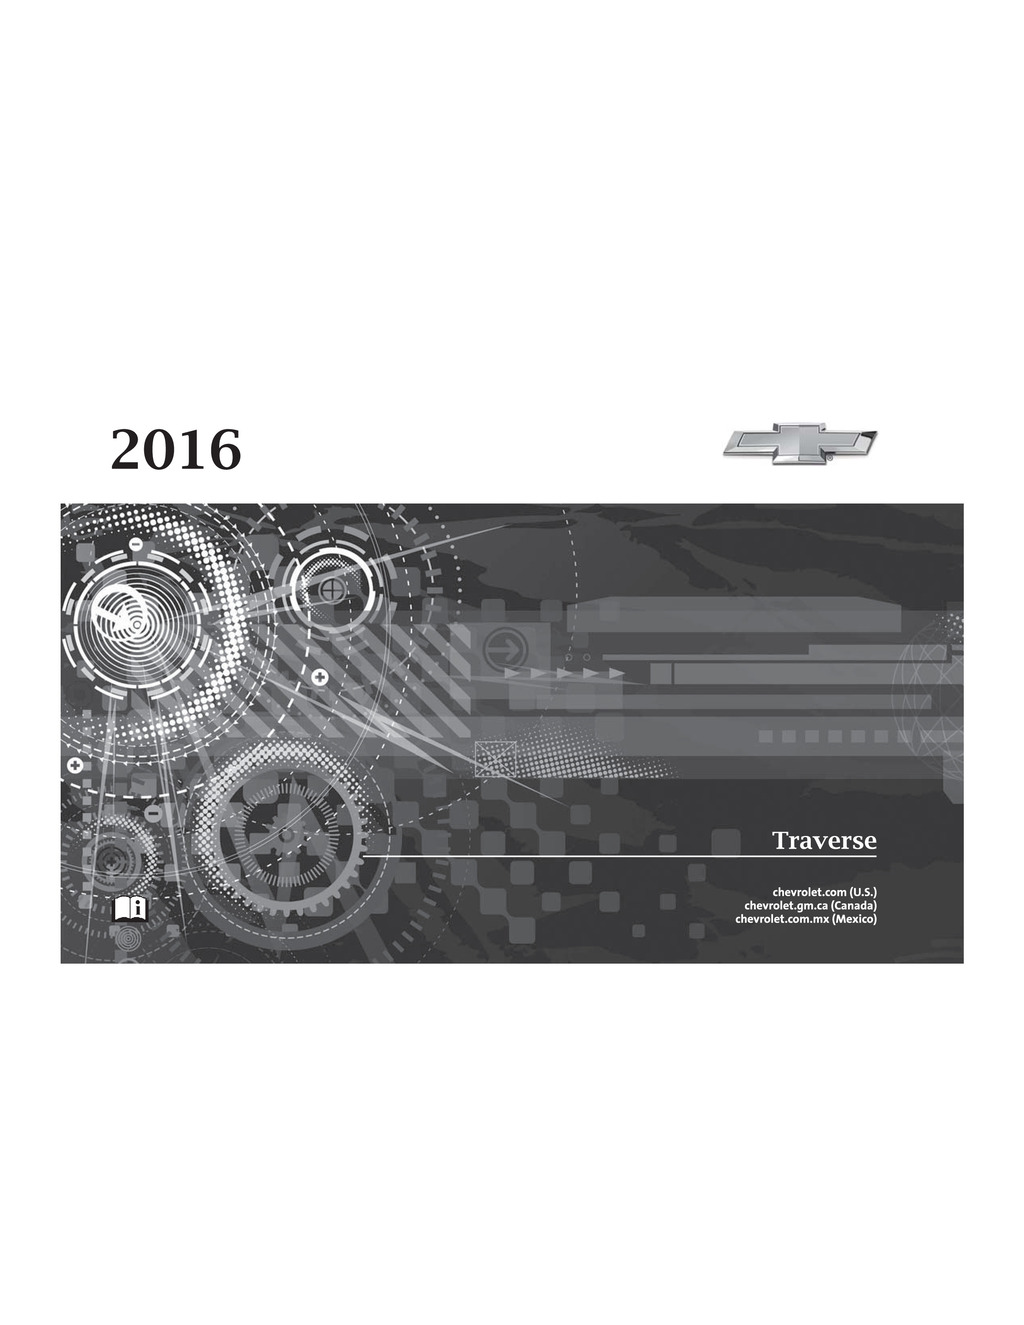 2016 Chevrolet Traverse owners manual